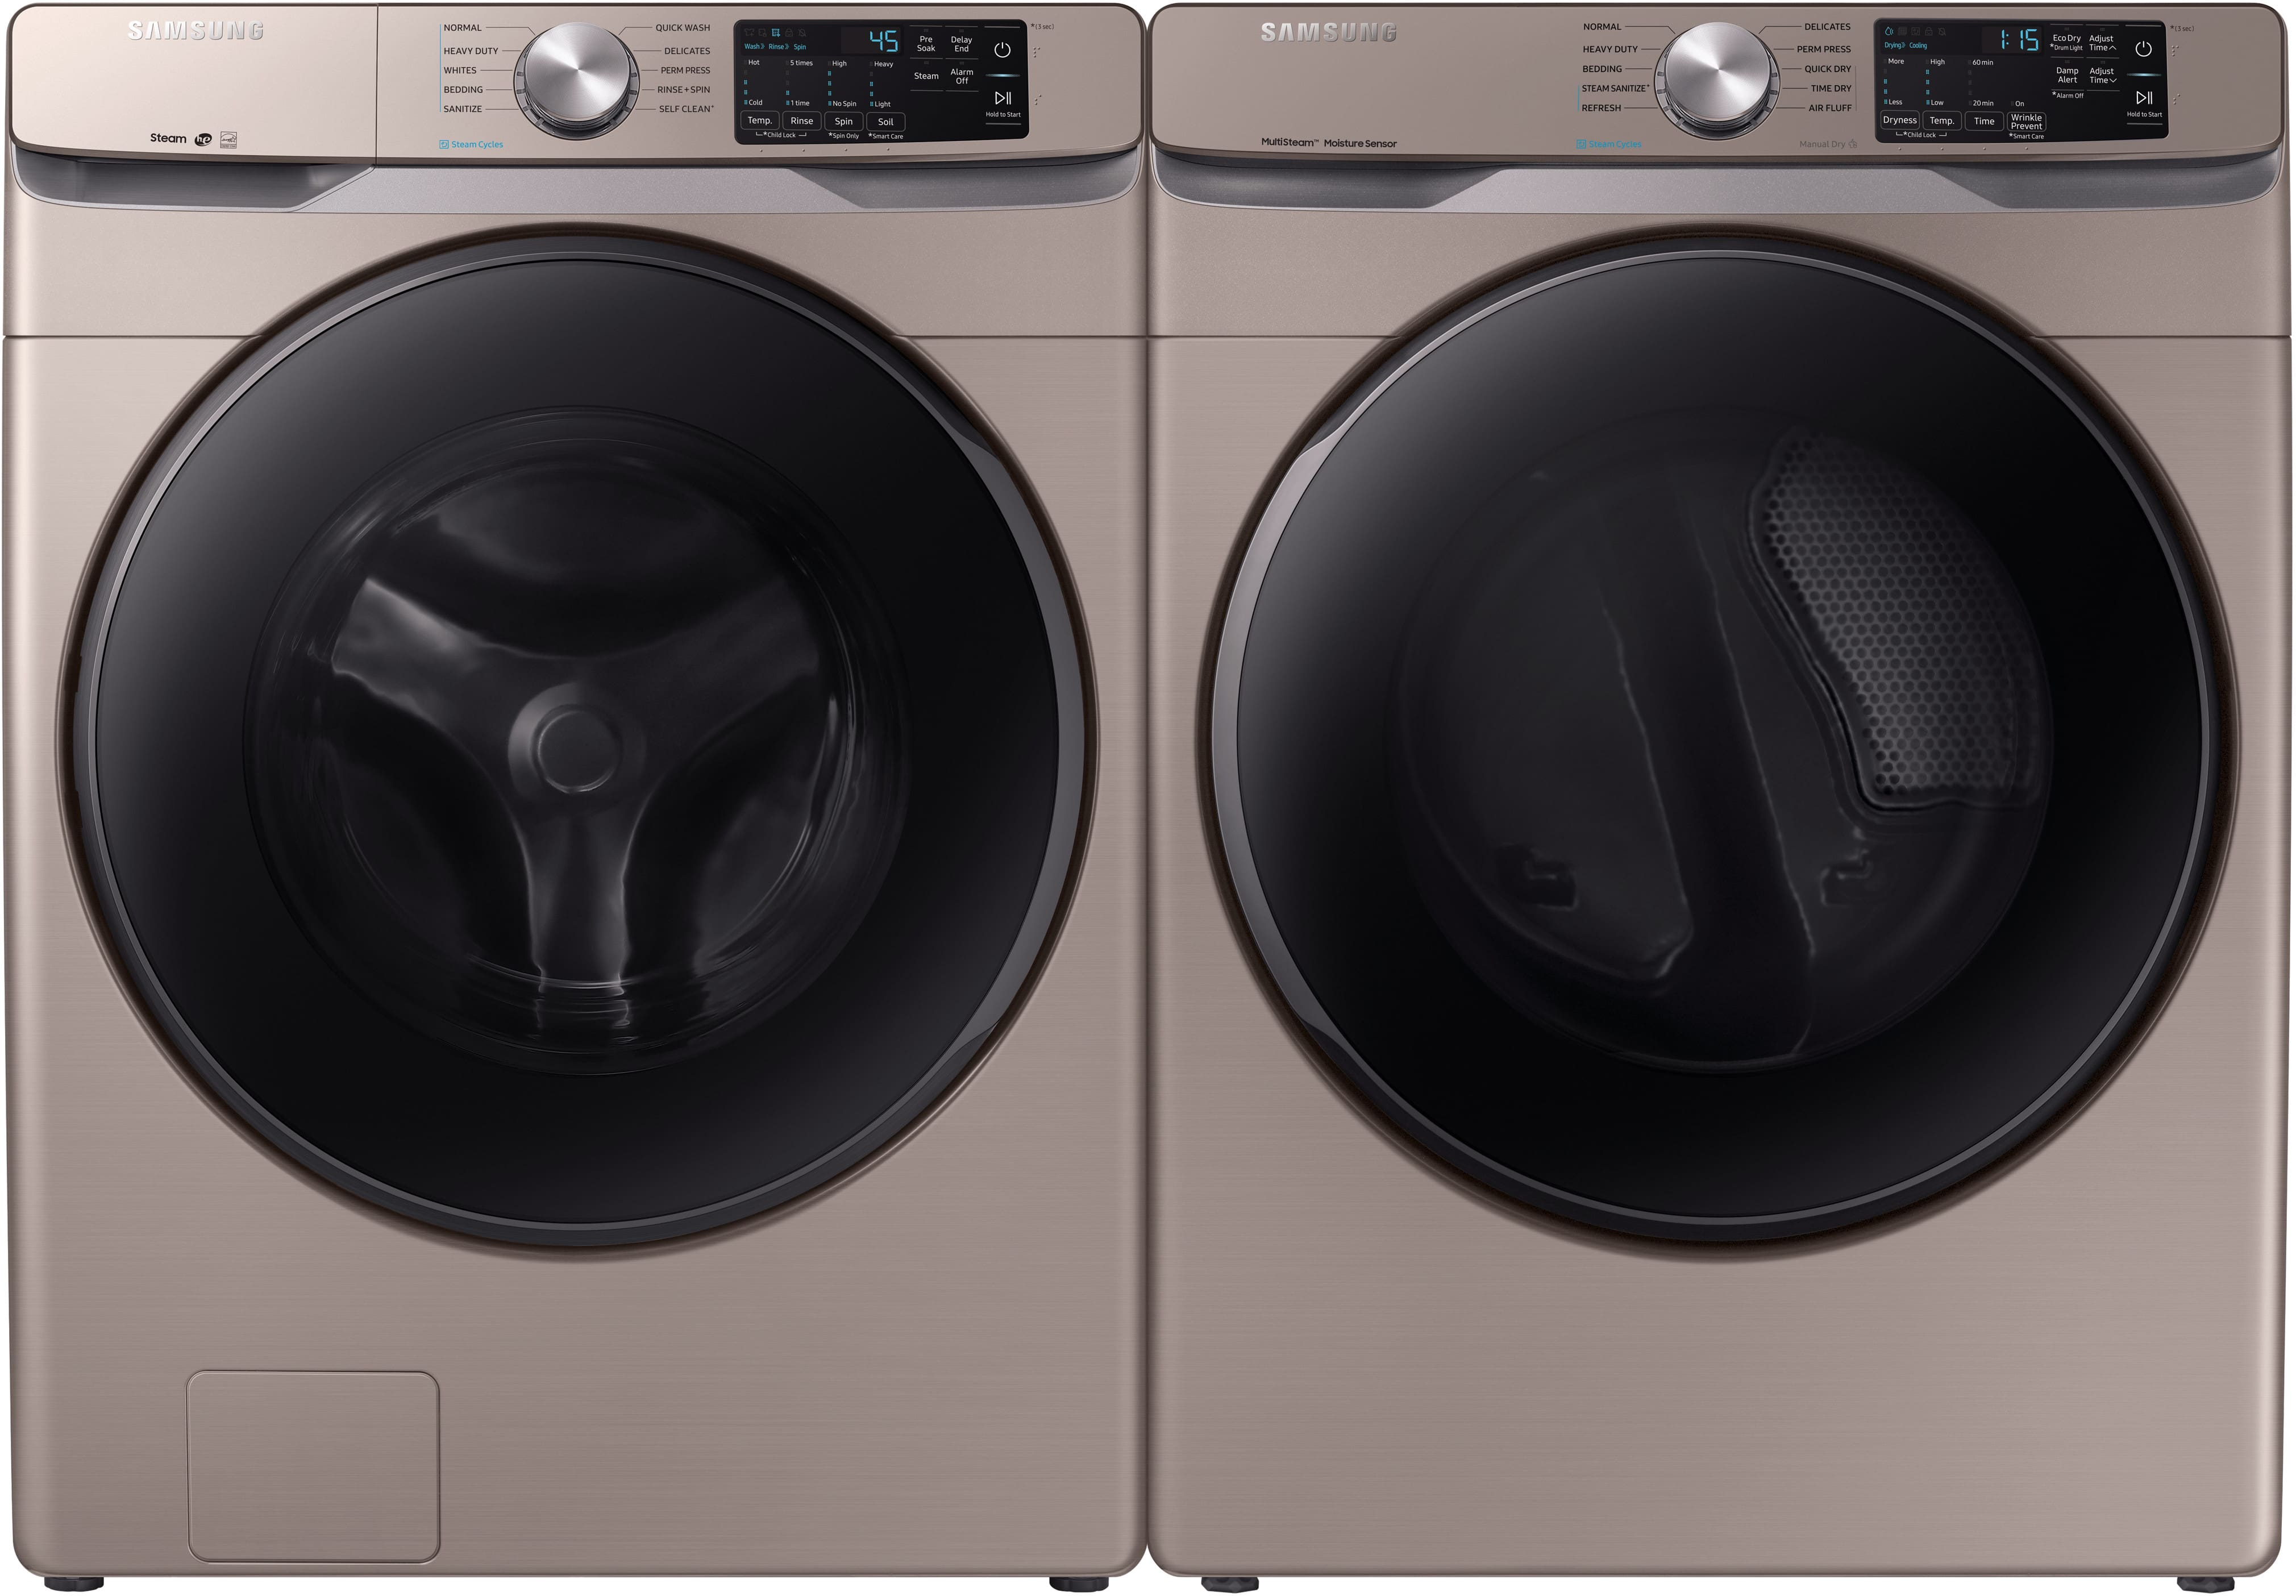 Samsung 4.5 cu. ft. High-Efficiency Front Load Washer &  7.5 cu. ft. Electric Dryer w/ Steam in Champagne $1090 AR + Free Shipping